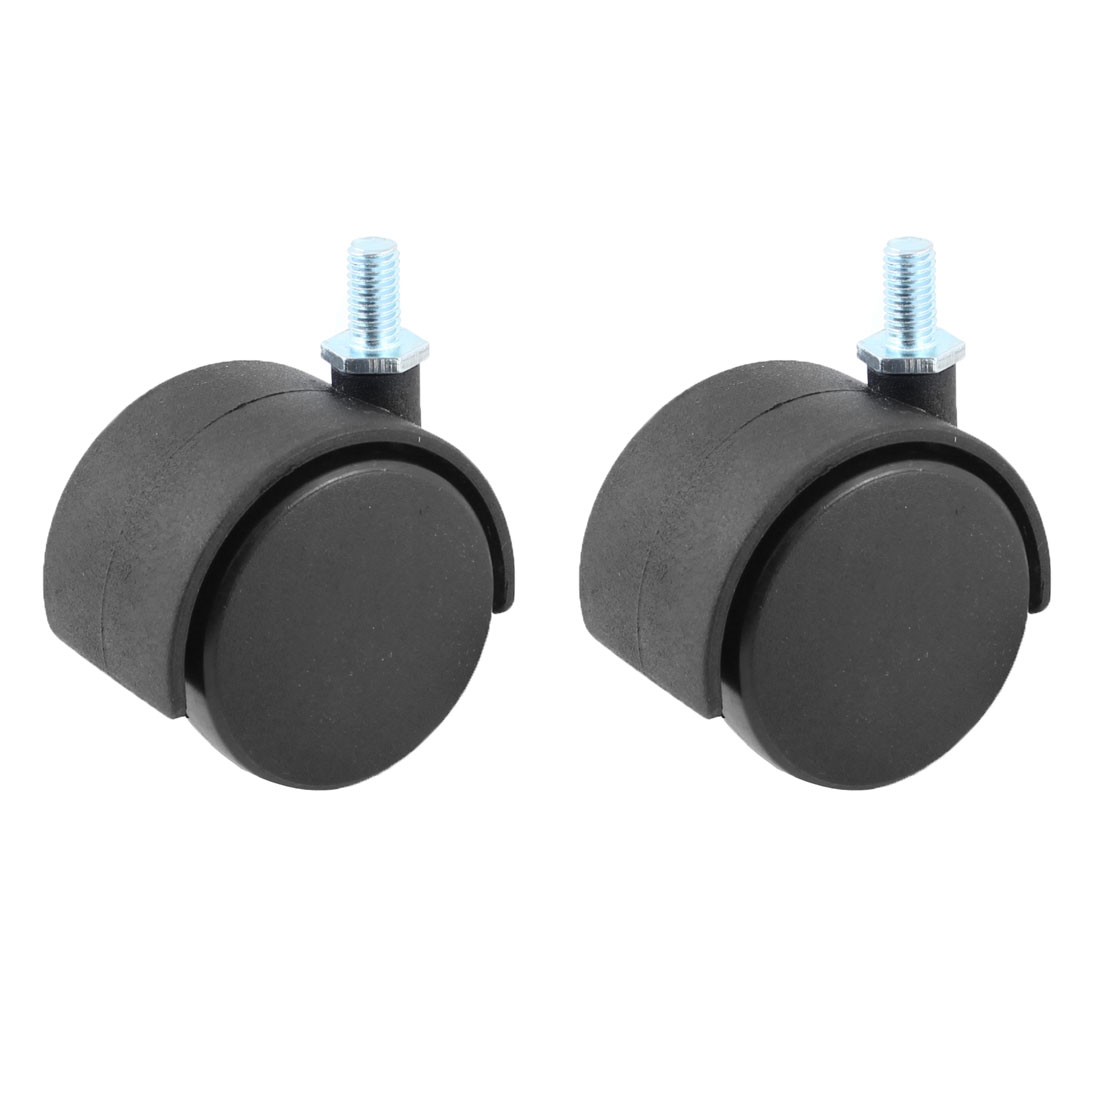 "Office Computer Chair Black Plastic 2"" Caster Roller Wheel 2pcs"